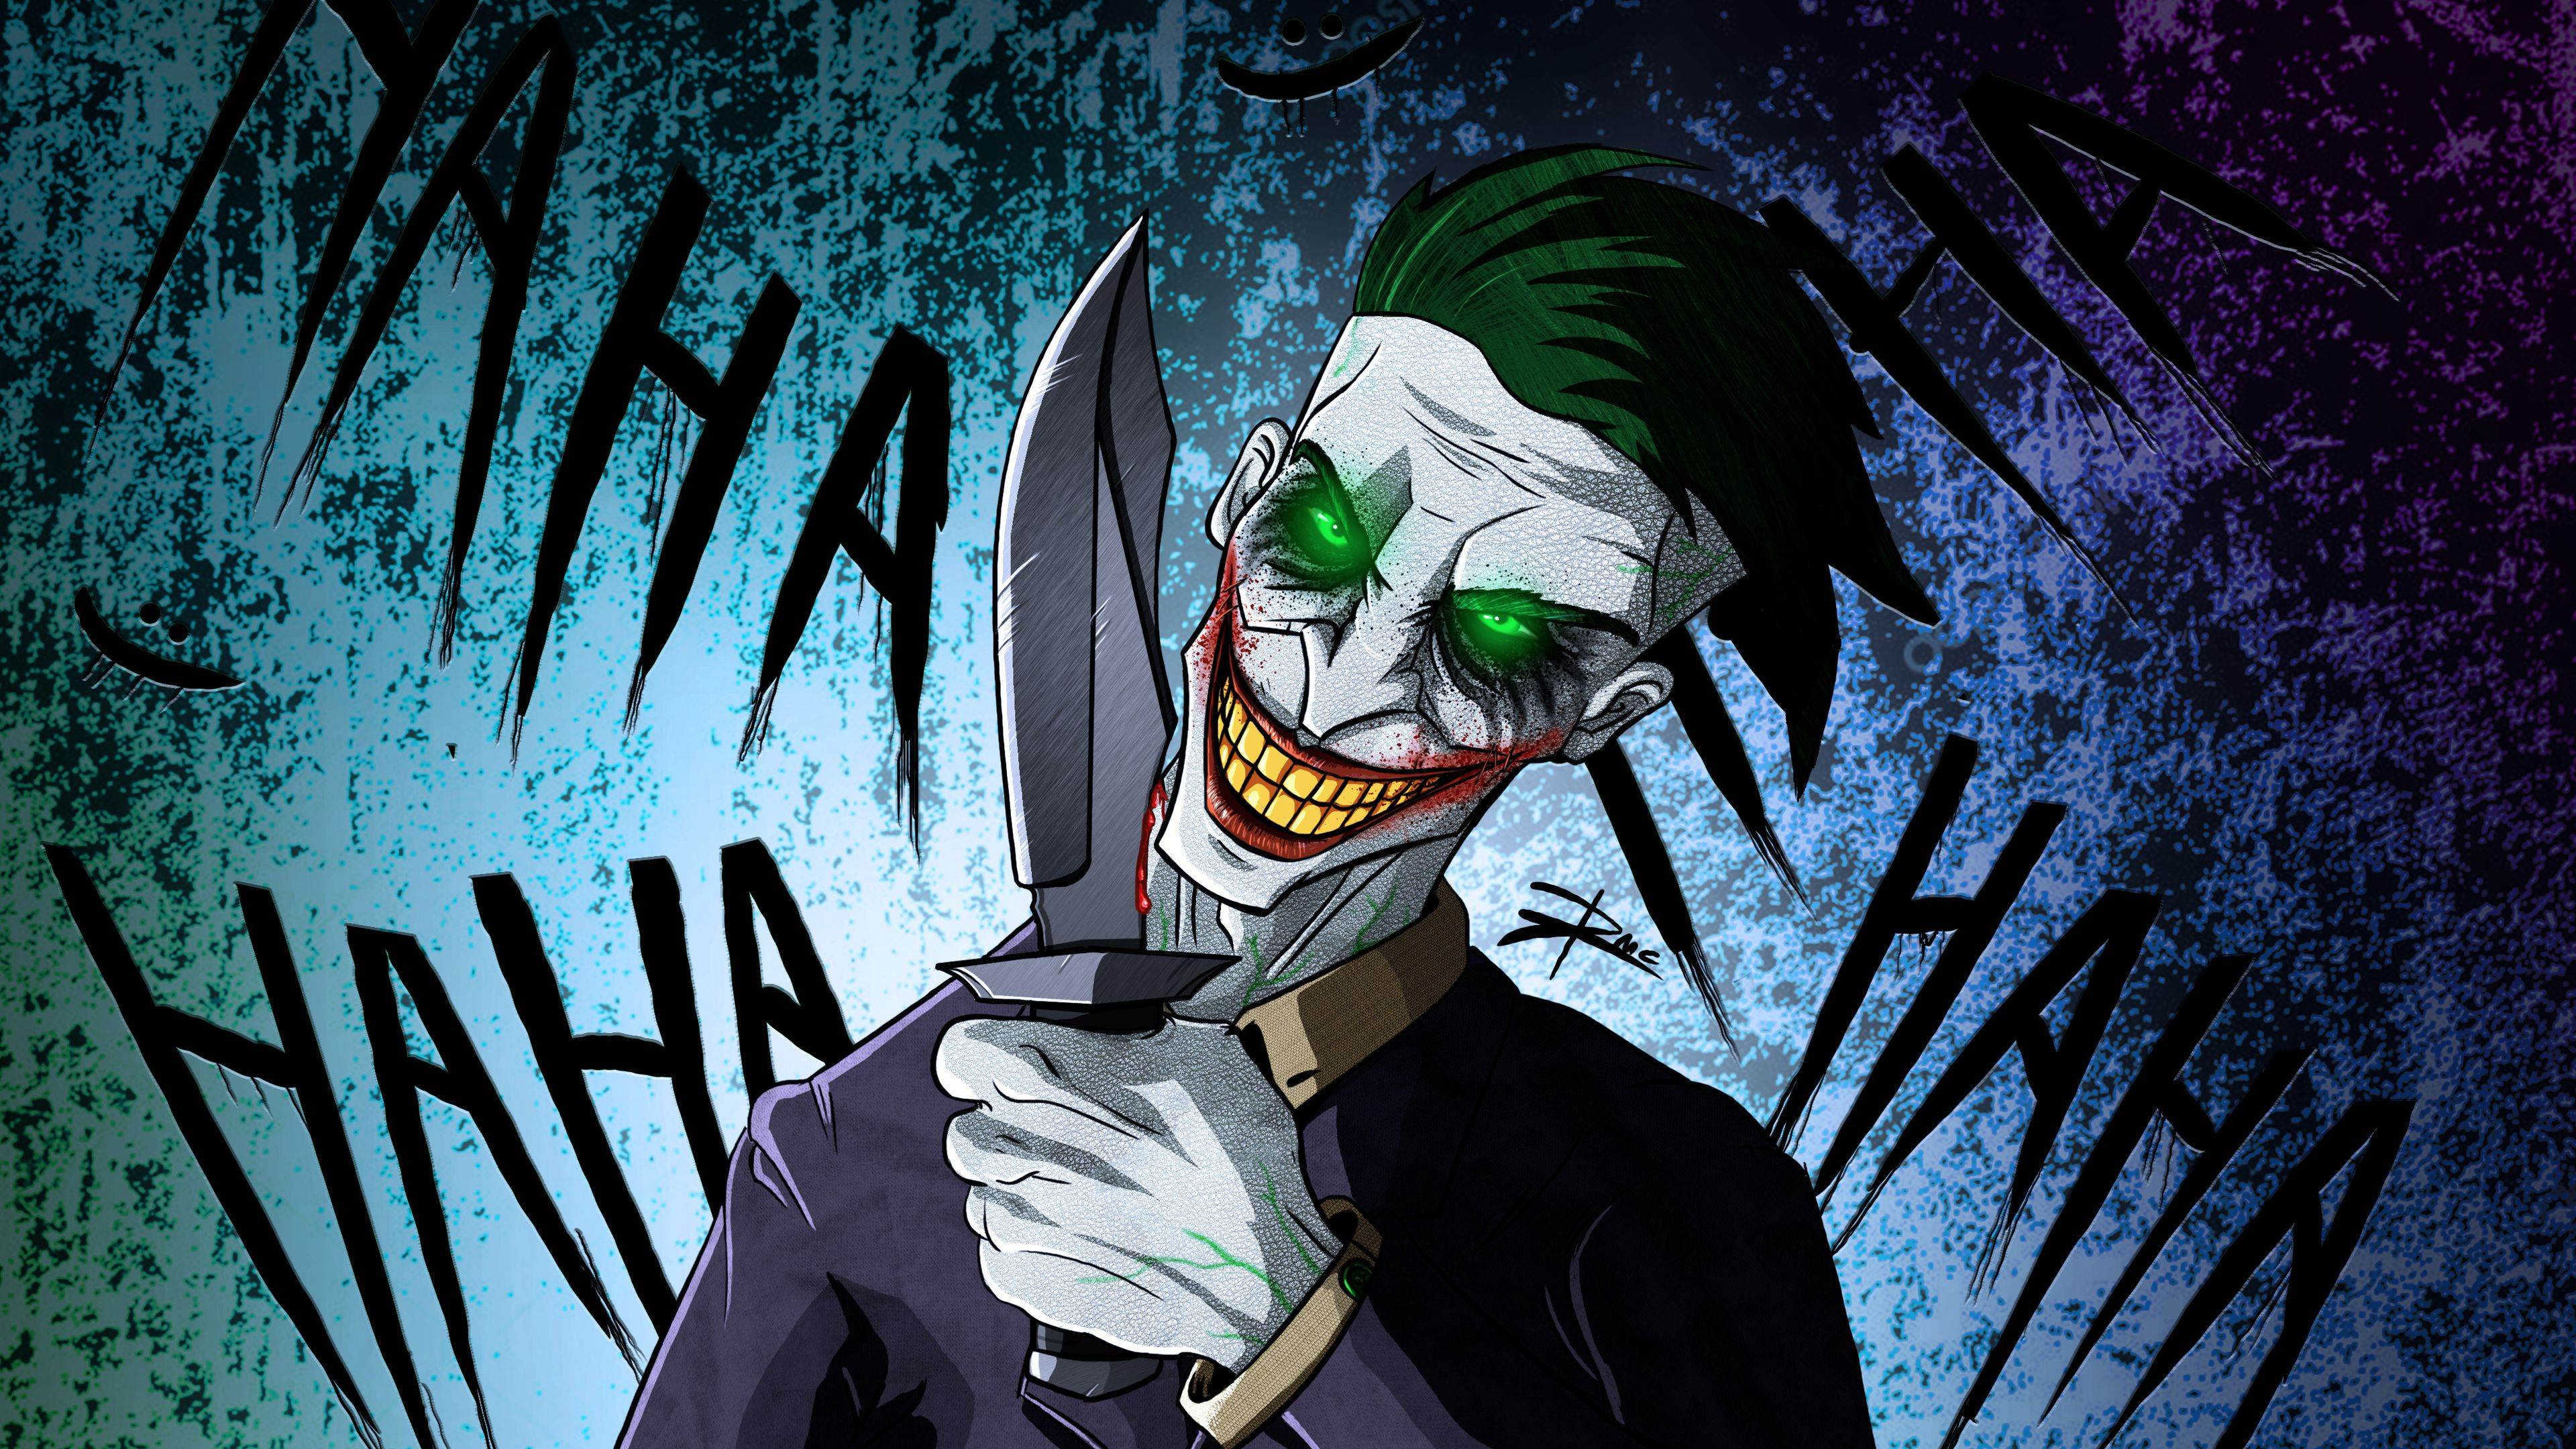 Wallpaper 4k Crazy Joker Art 4k 4k Wallpapers Artist Wallpapers